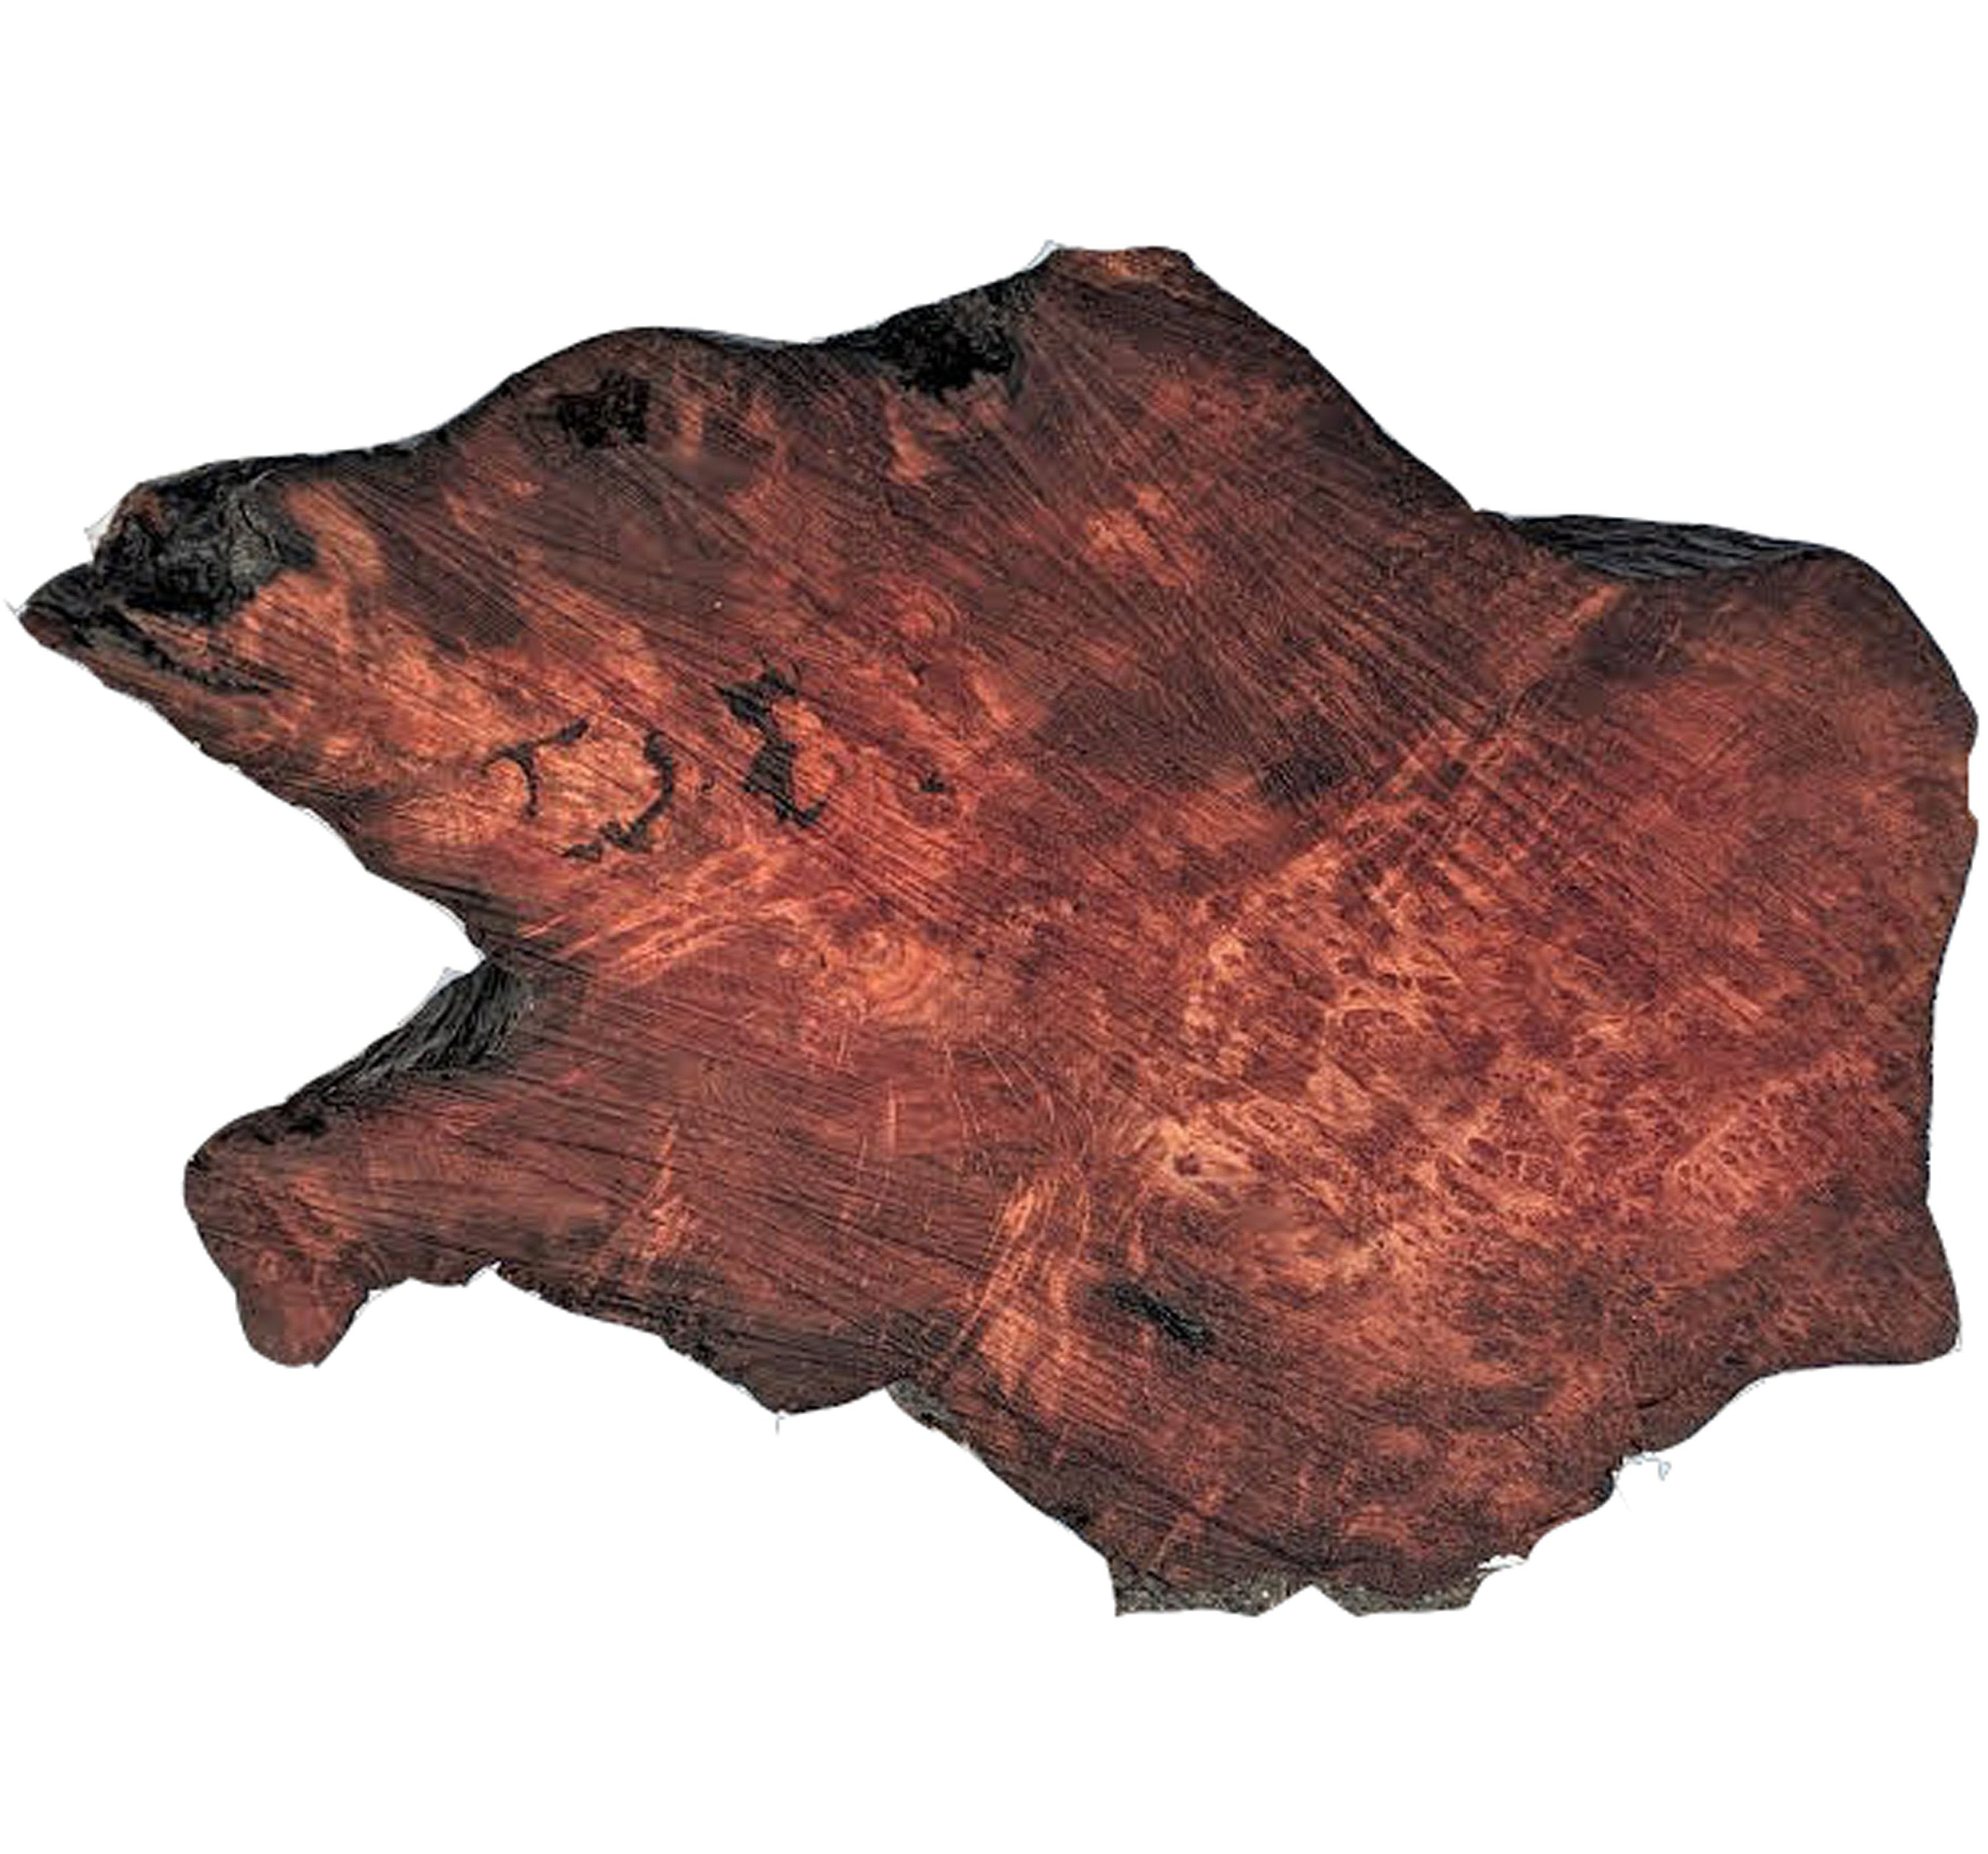 live edge slab | redwood burl |river table - bsz1354